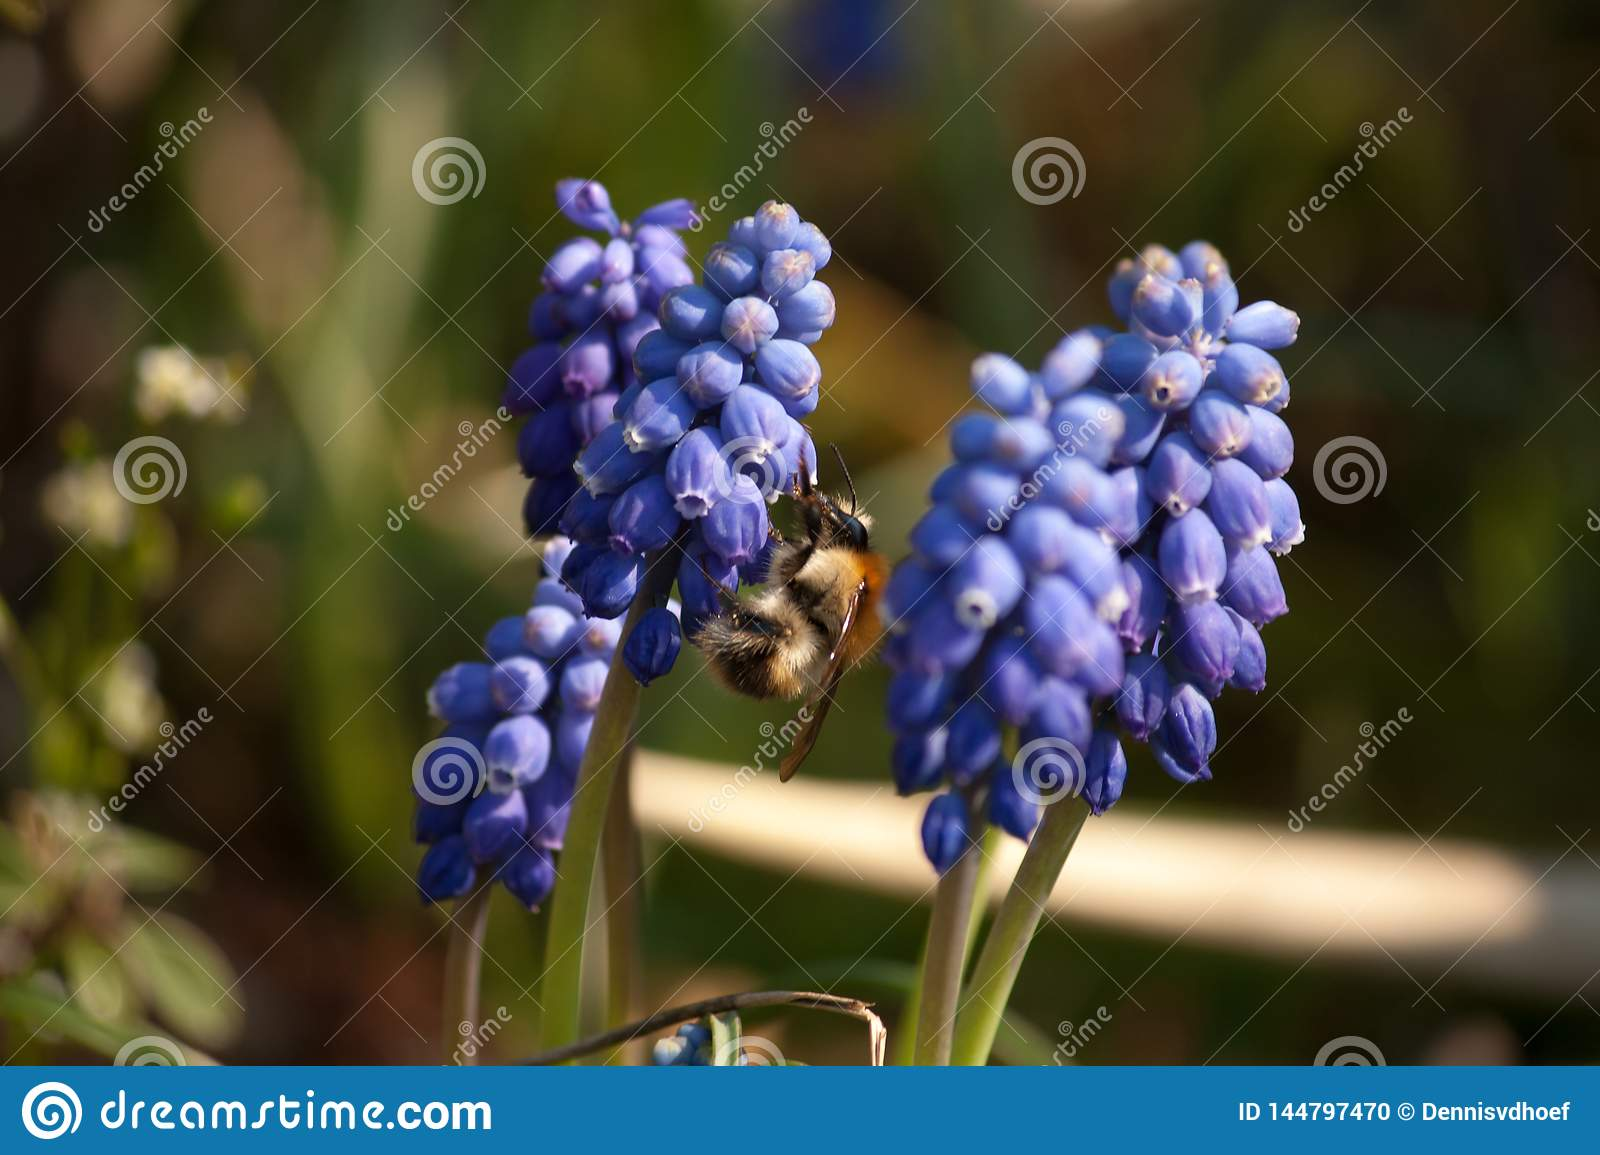 Bumblebee on a blue grape hyacinth standing in my garde.